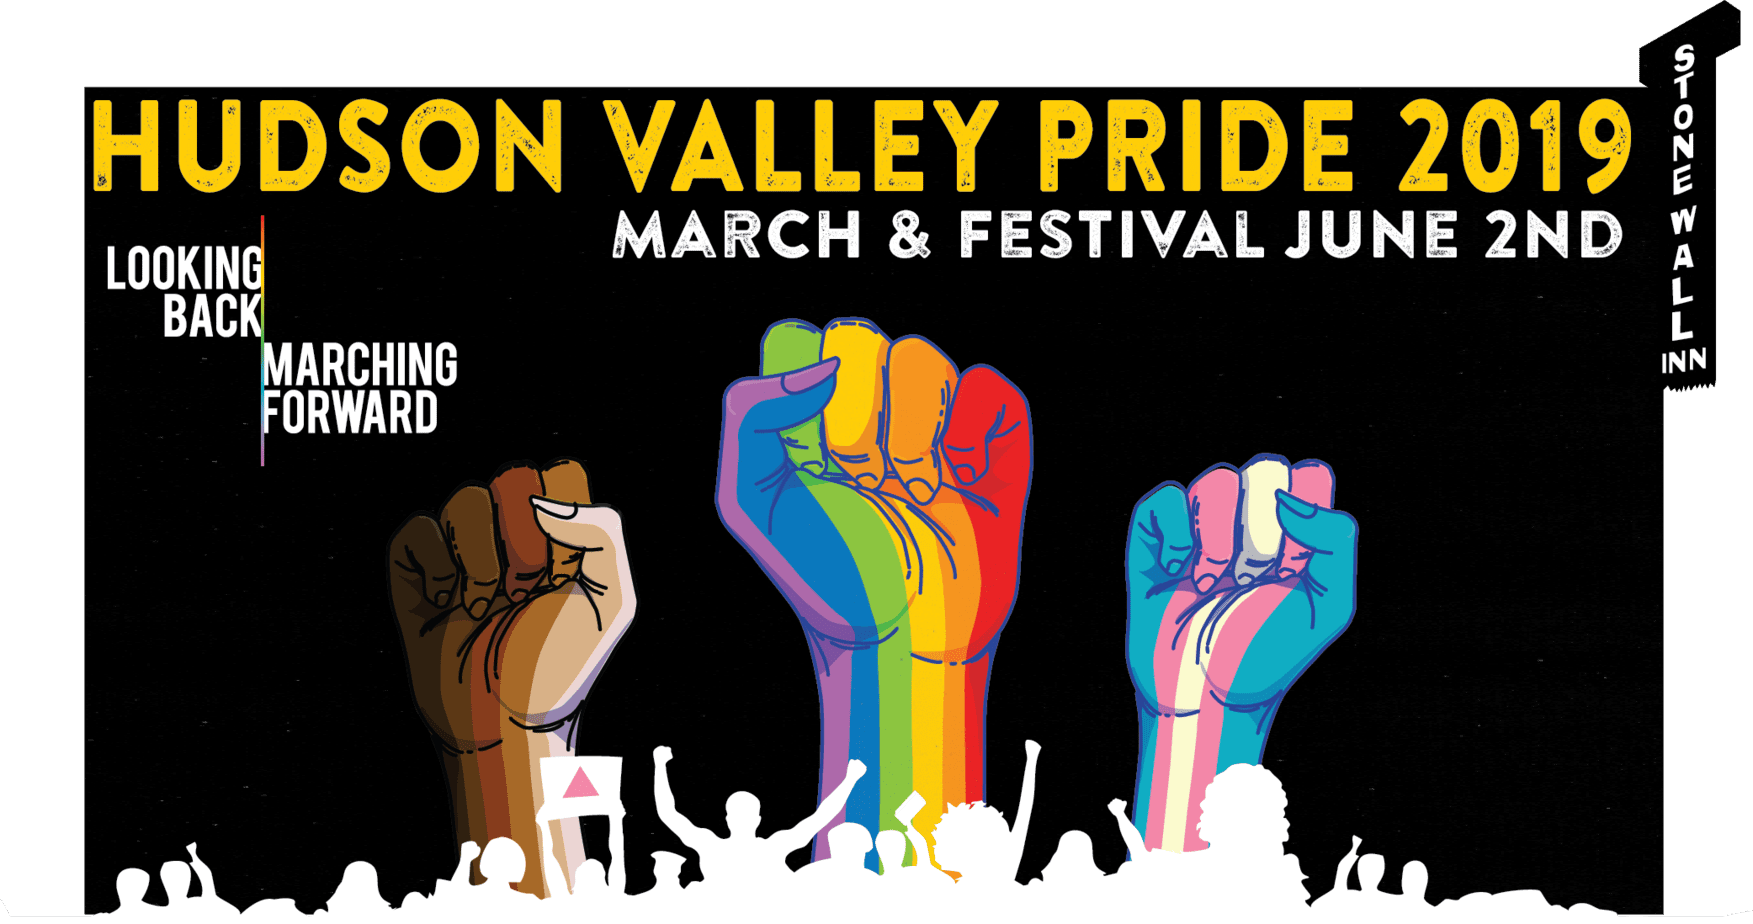 "Hudson Valley Pride 2019. 3 fists with the rainbow, trans, and black & brown flags are raised over a crowd of protesters. Text saying ""Looking Back, Marching Forward"" and ""March & Festival June 2nd) hang above them. To the right, a sign says ""Stonewall Inn"""